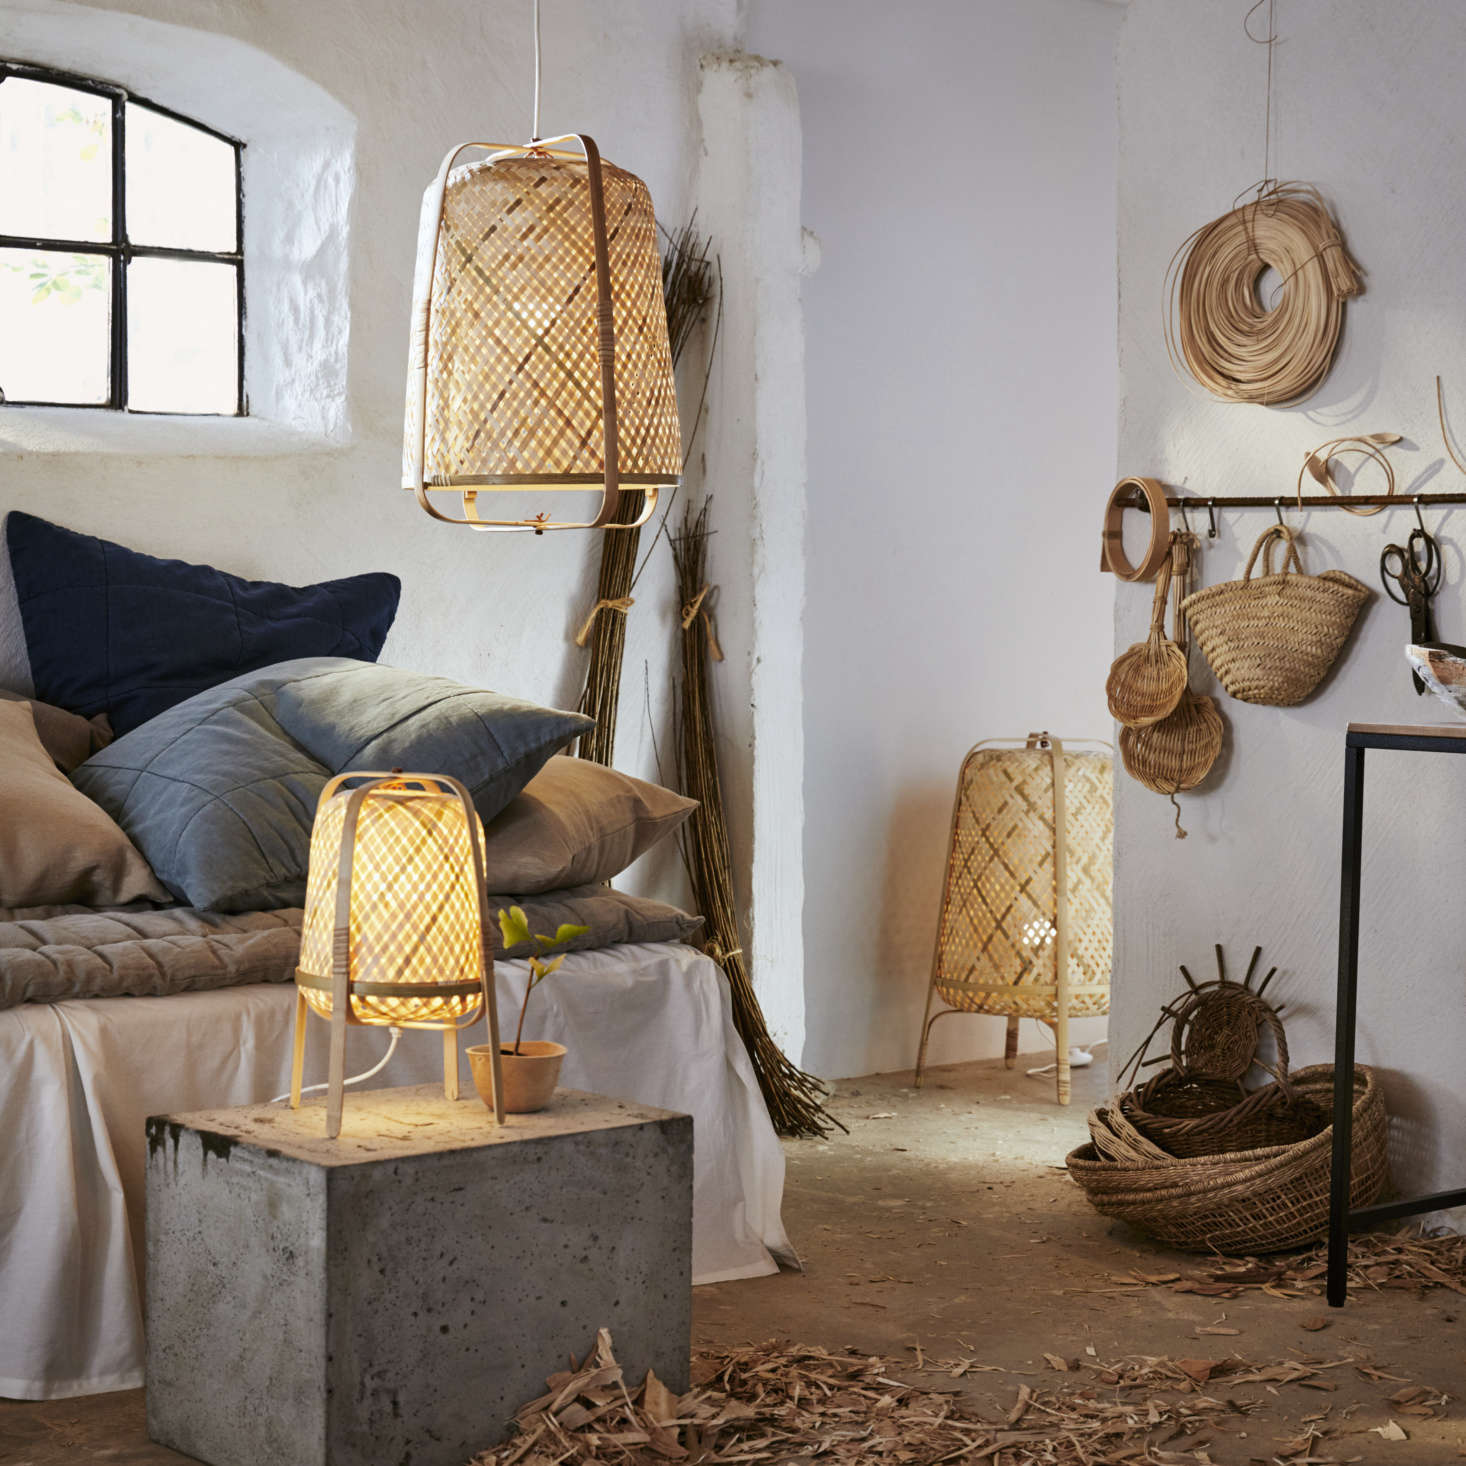 Eco-Chic: 6 Favorite Finds from Ikea's April Collections